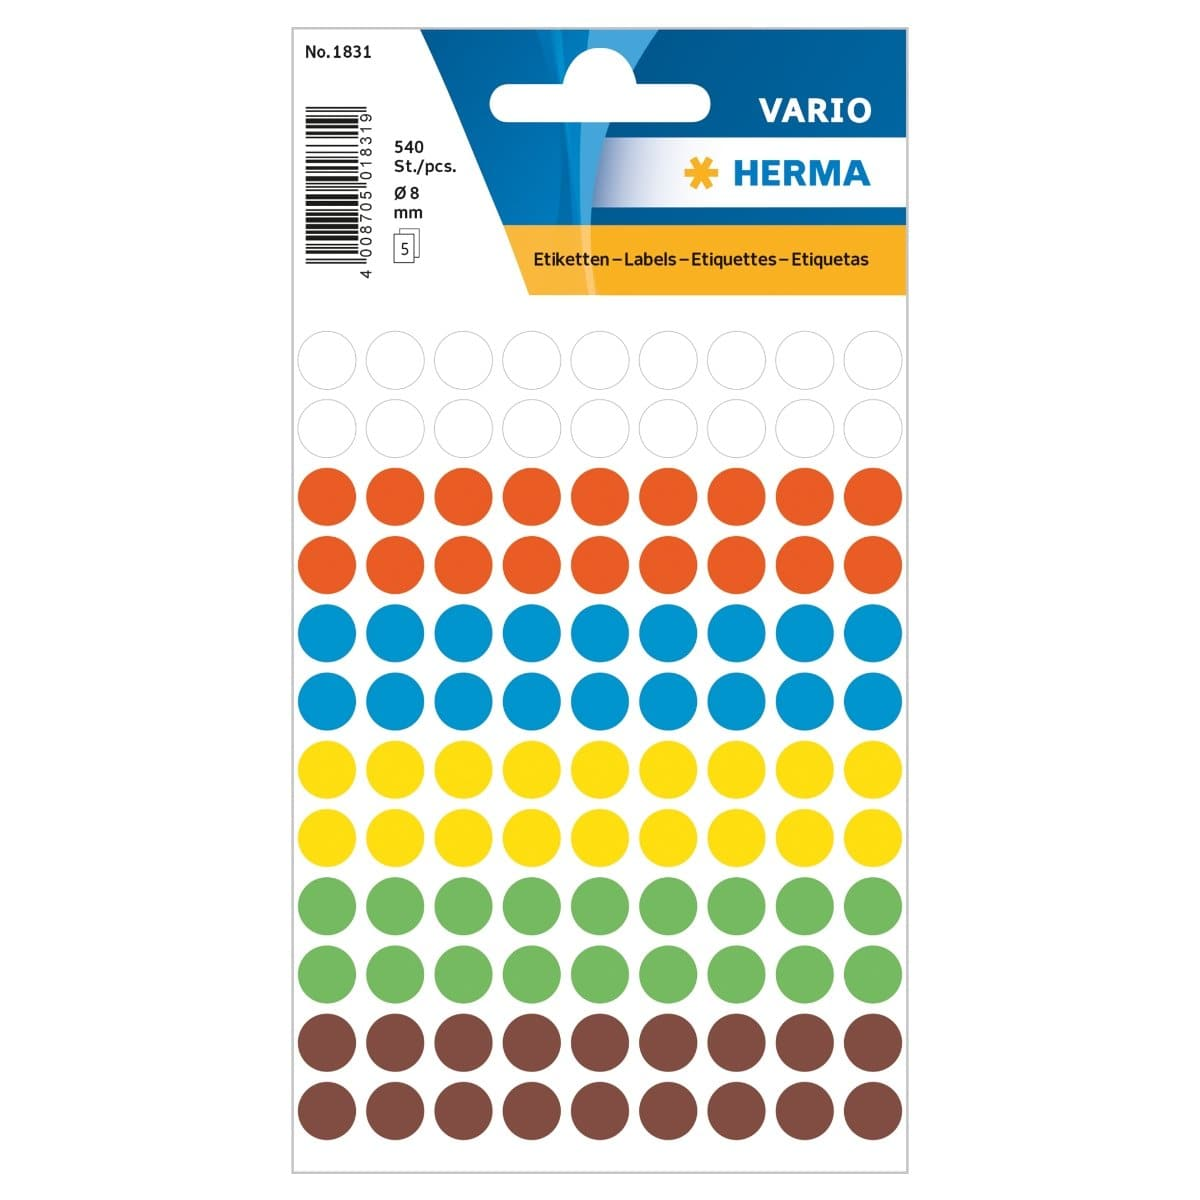 Herma Vario Sticker Color Dots, 8 mm, 540/pack, Assorted Colors